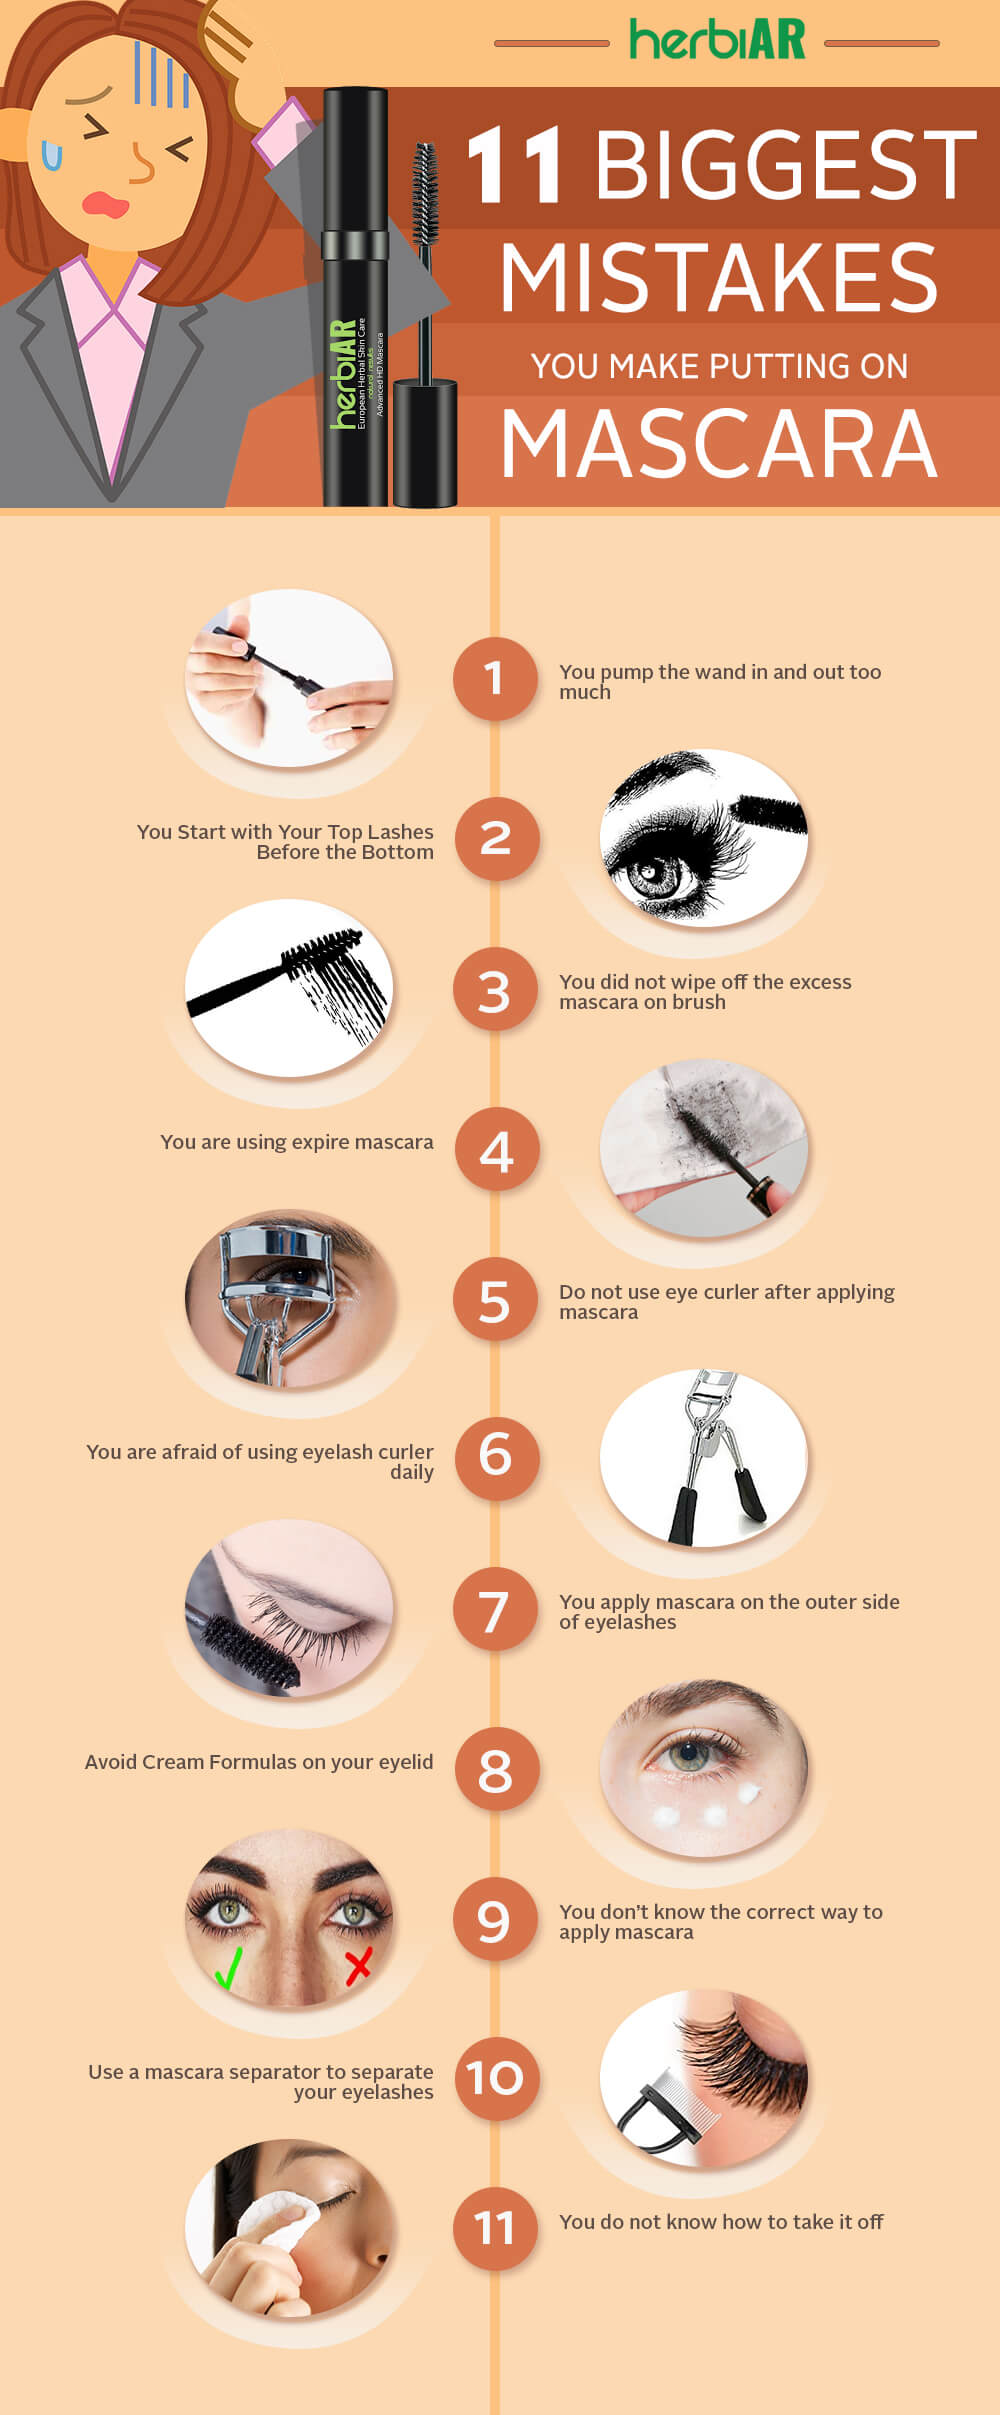 11 Biggest Mistakes You Make Putting on Mascara